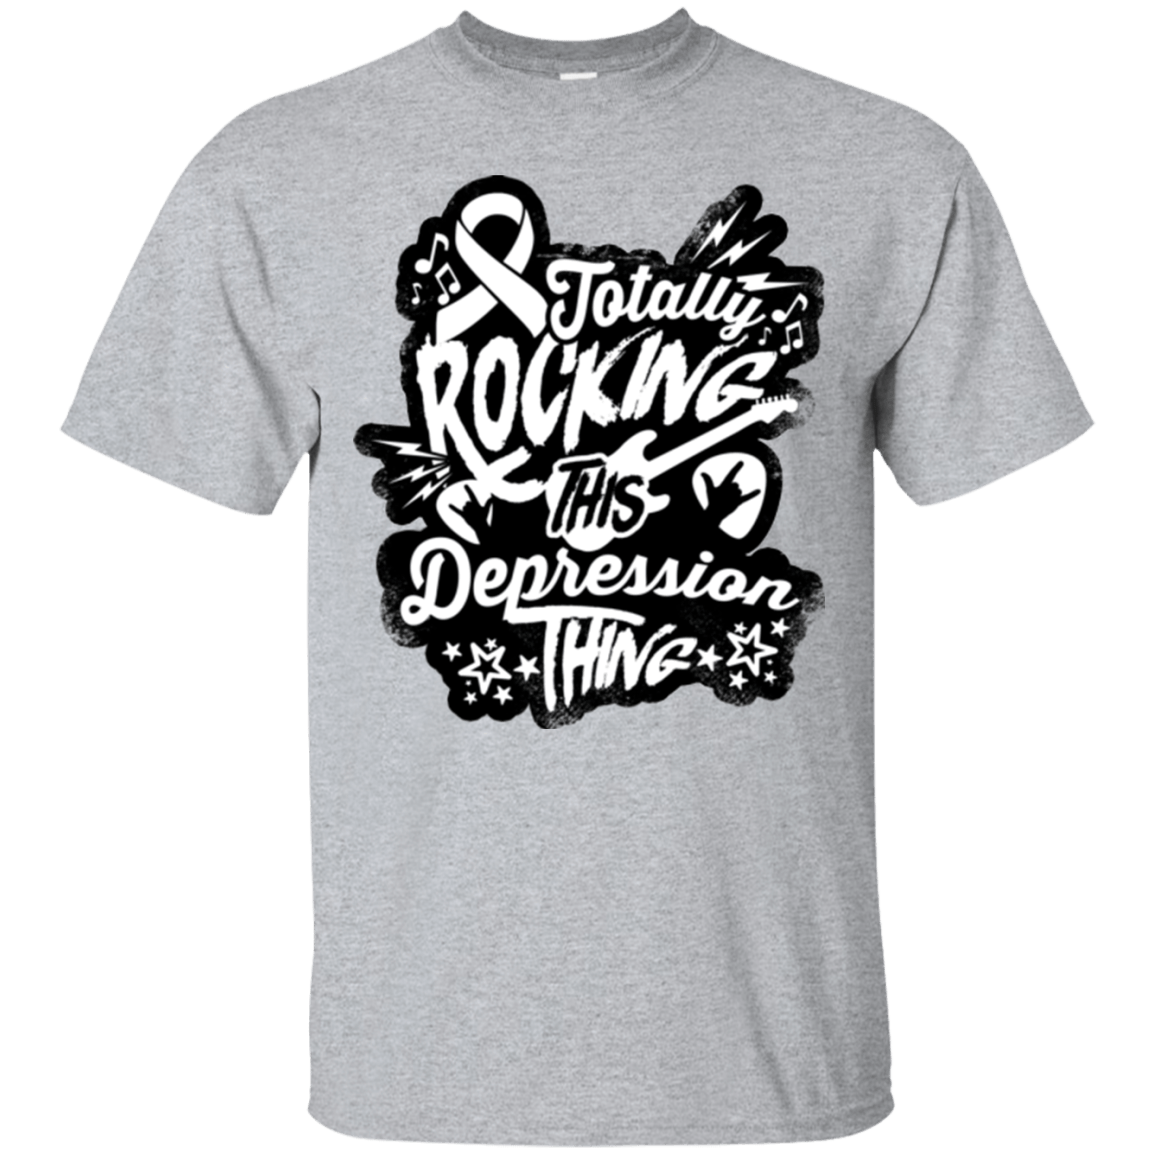 Rocking Depression Unisex Shirt - The Unchargeables